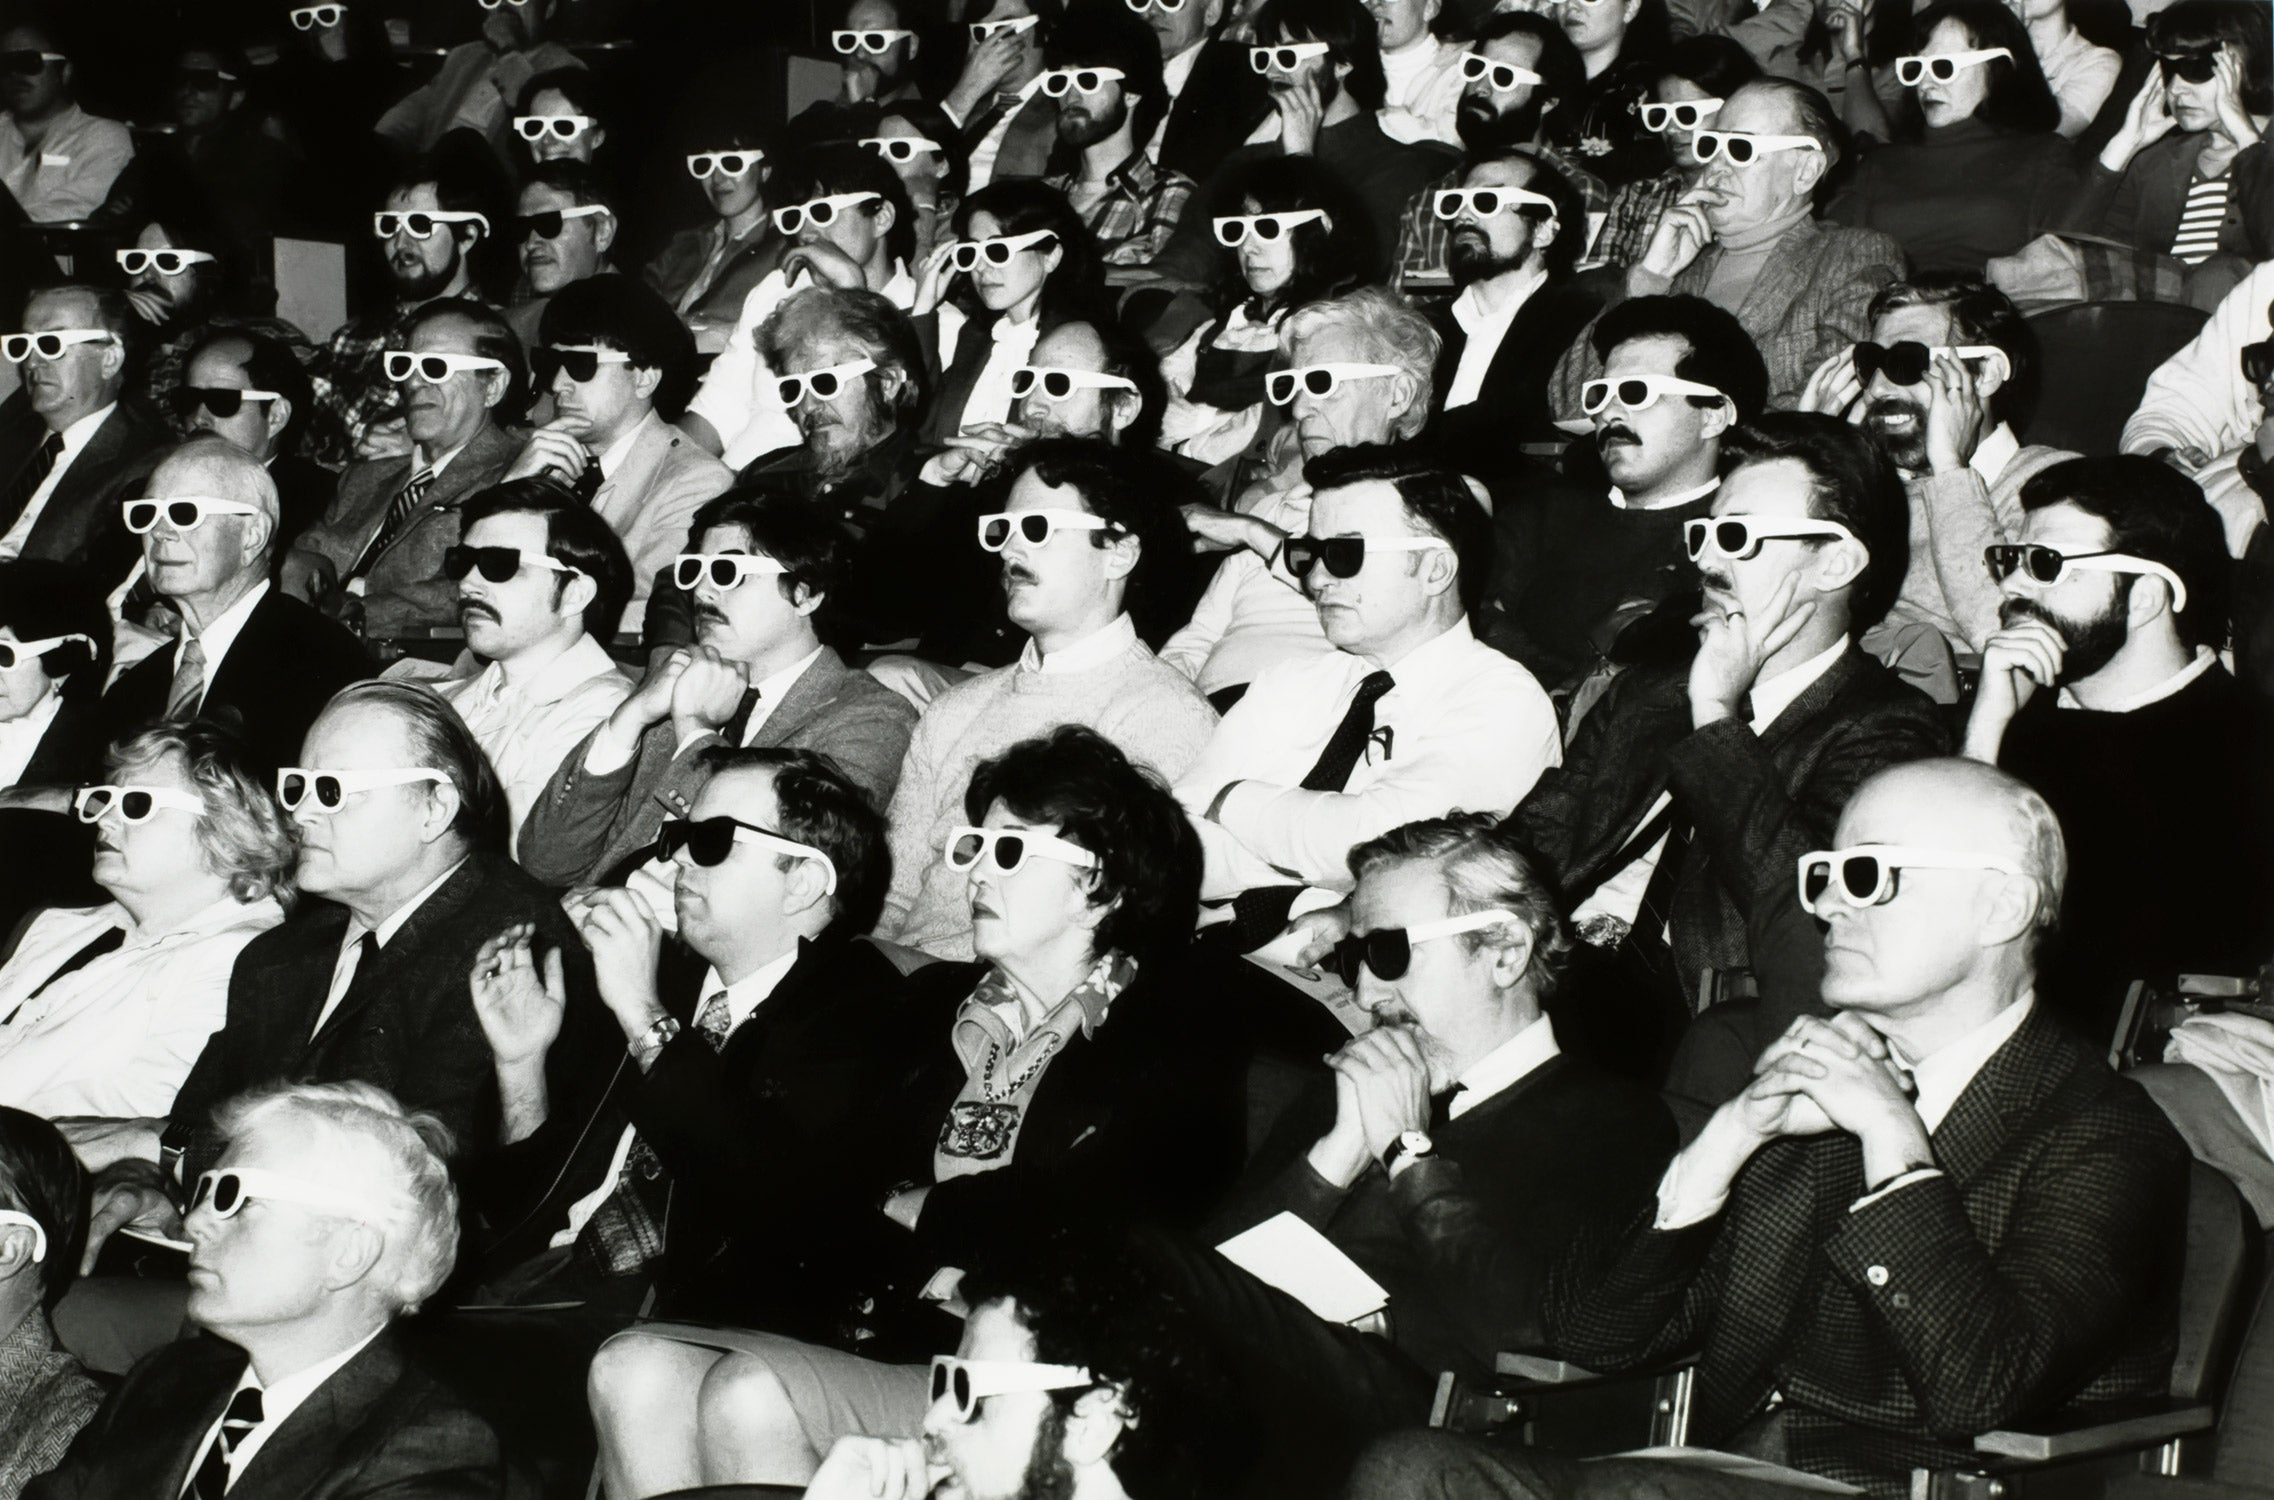 Movie theatre audience with 3d glasses